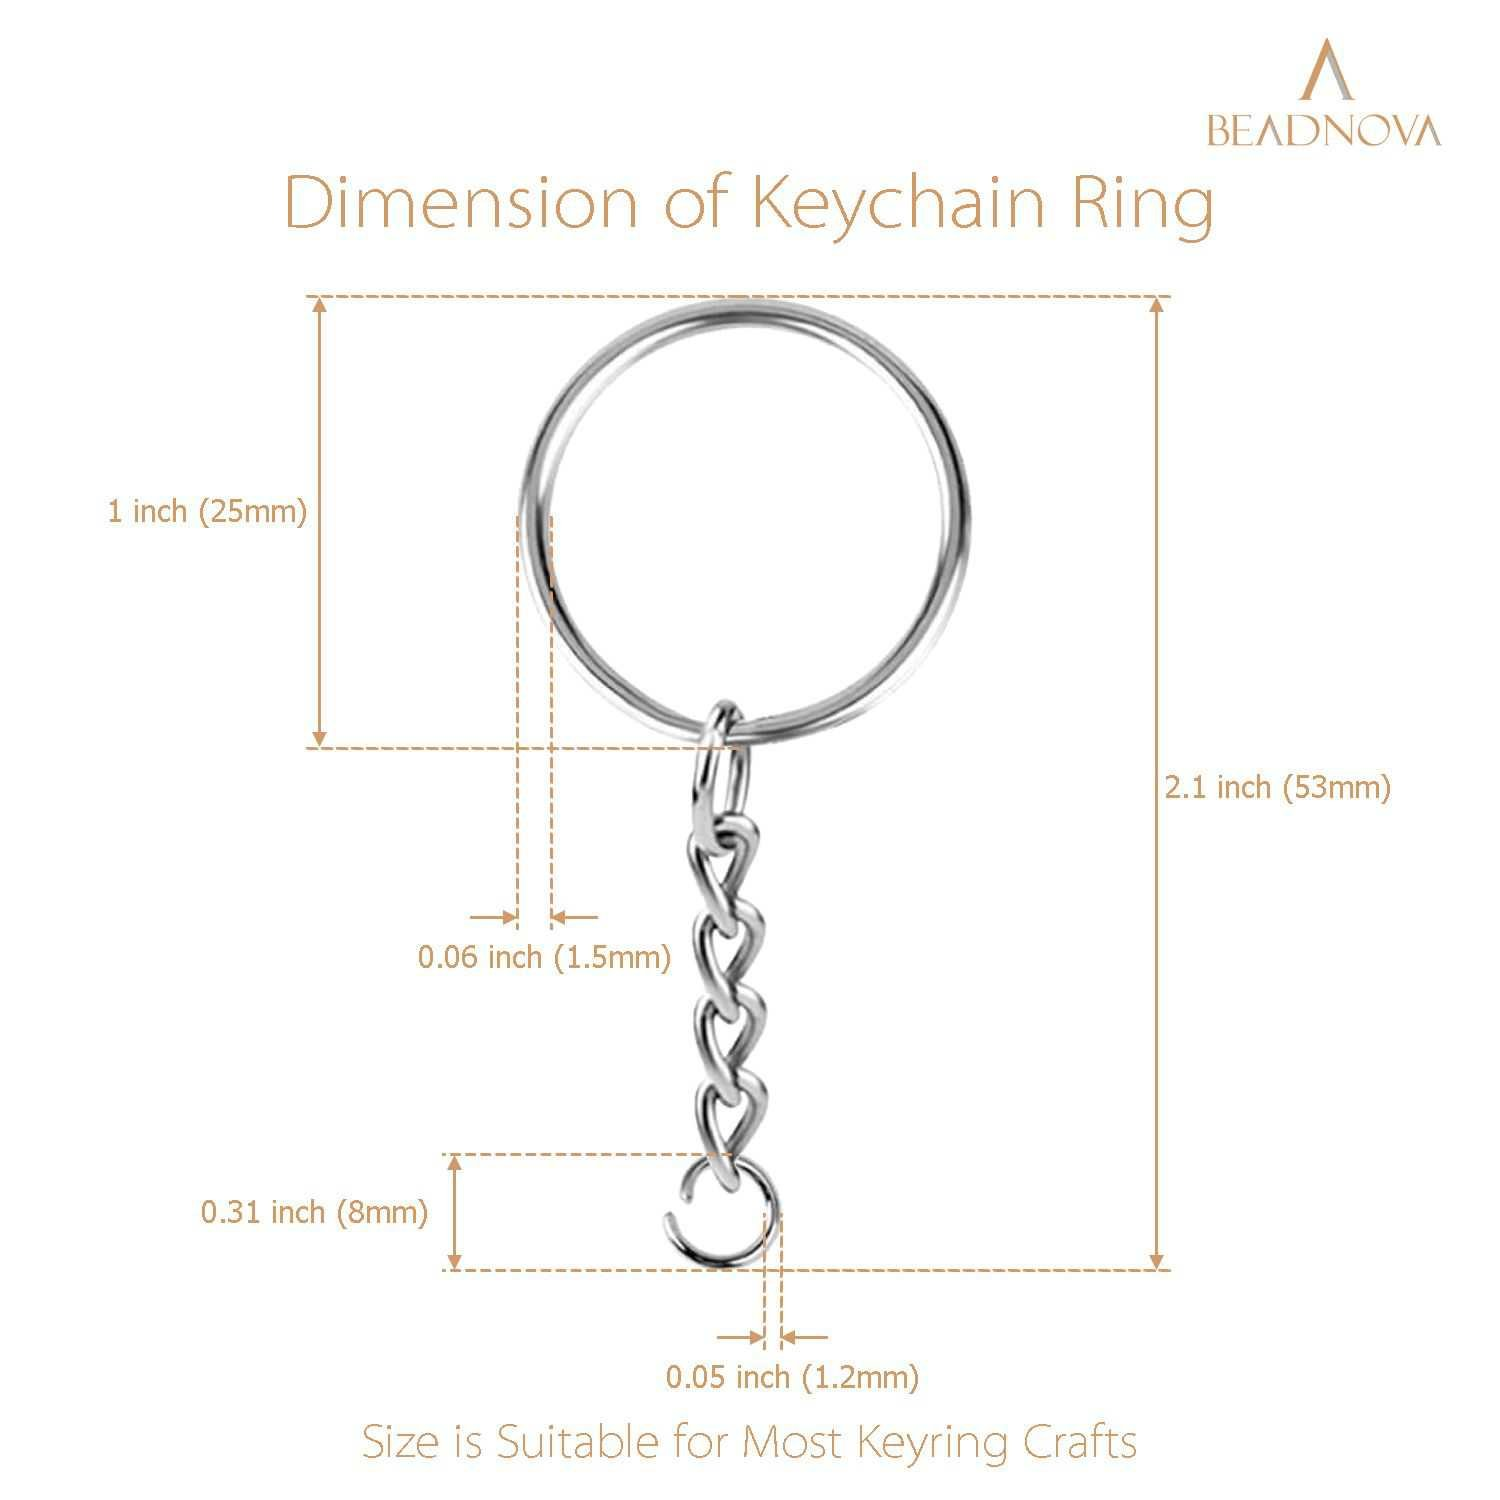 BEADNOVA Split Key Rings with Keychains and Jump Ring Metal Keychain Kit Key Chains for Jewelry Making Key Chains Rings DIY (25mm, 150pcs)